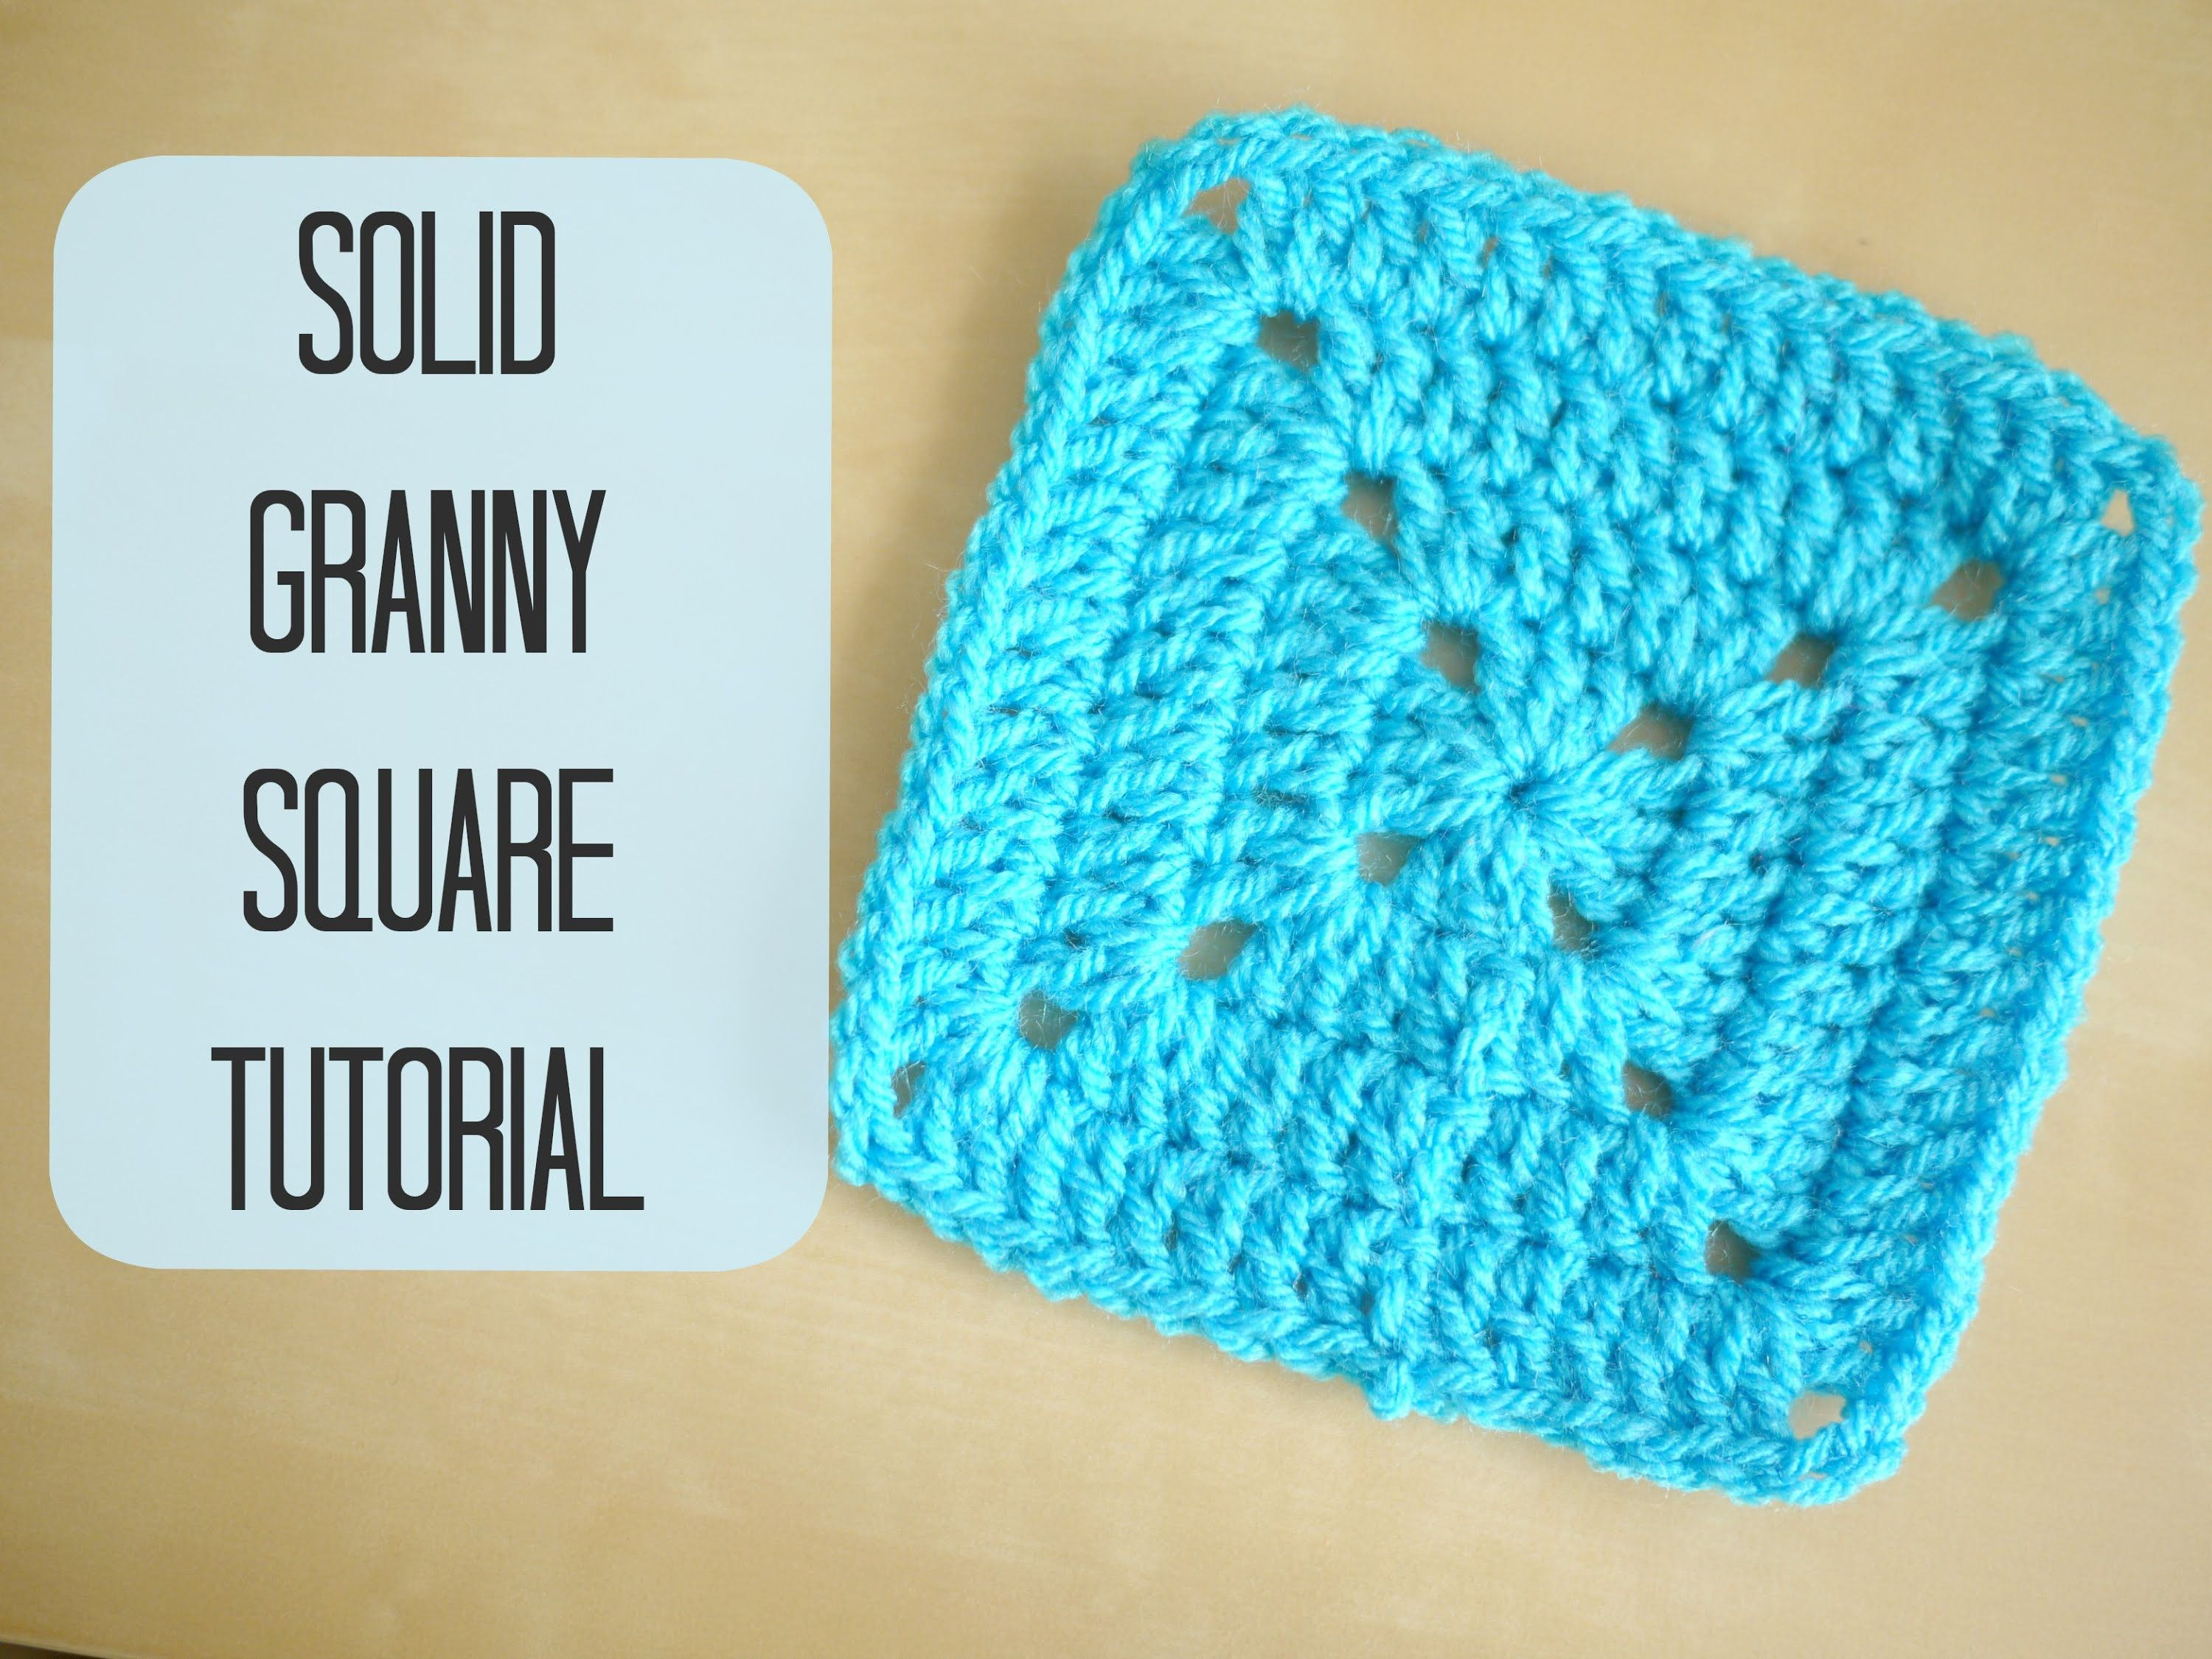 CROCHET: How to crochet a solid granny square for beginners